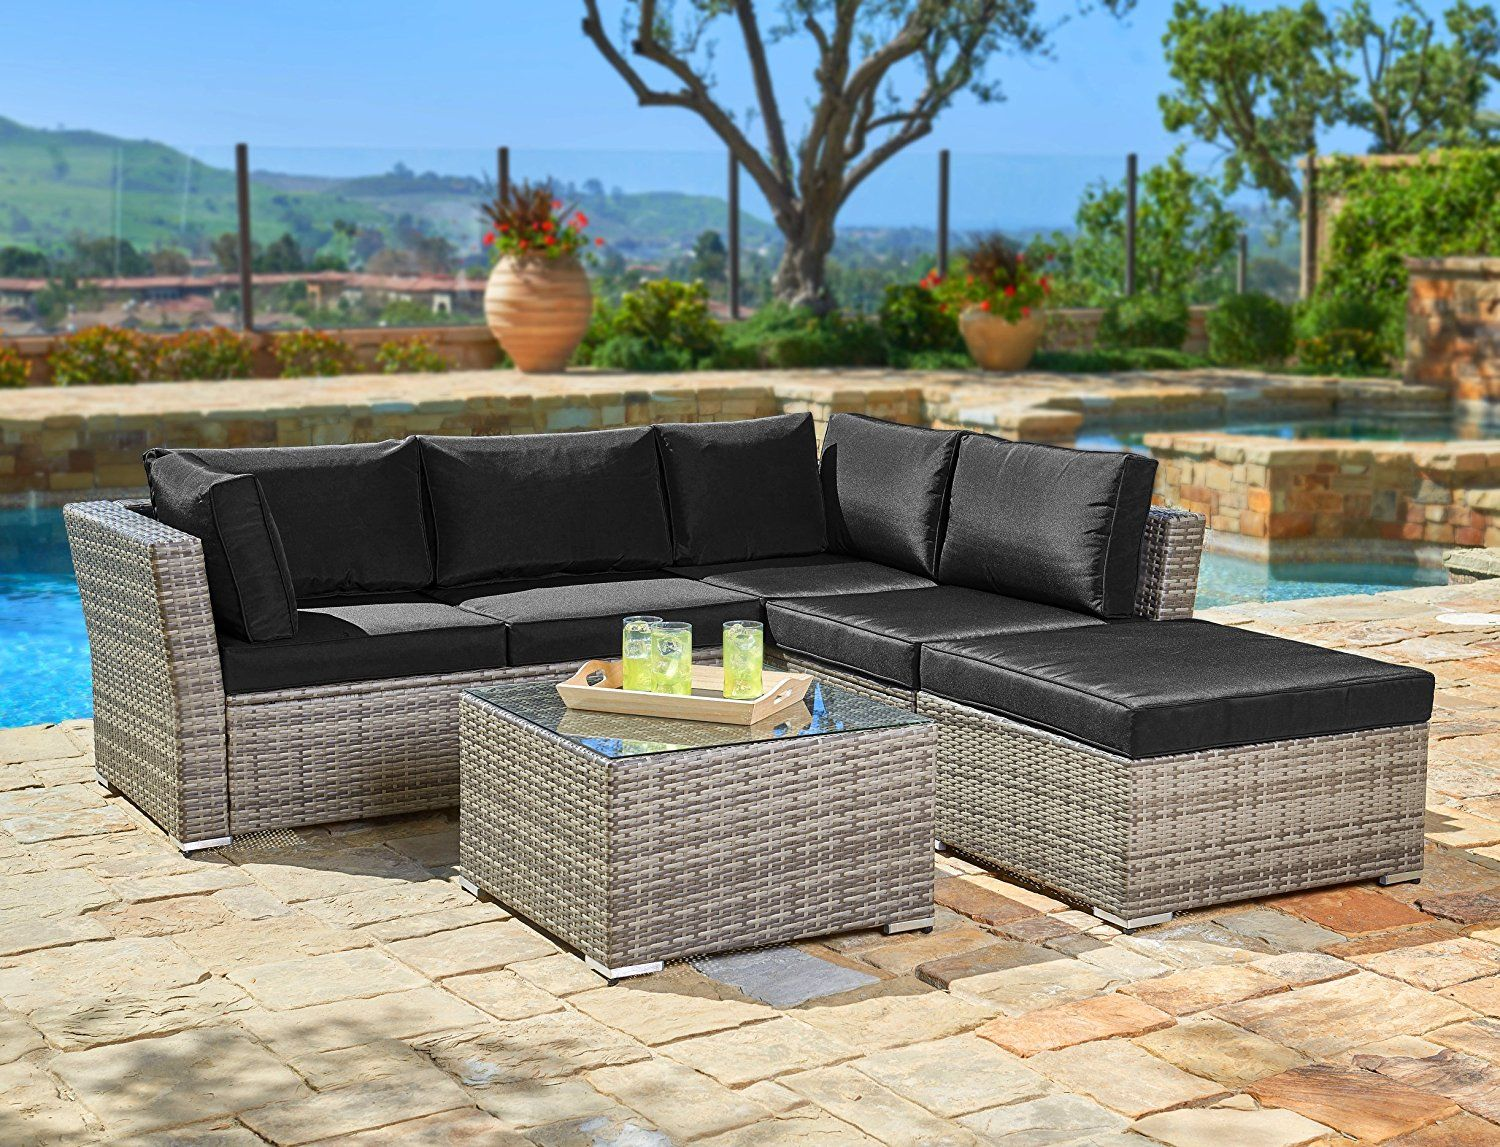 Suncrown Outdoor Furniture Sectional Sofa (4